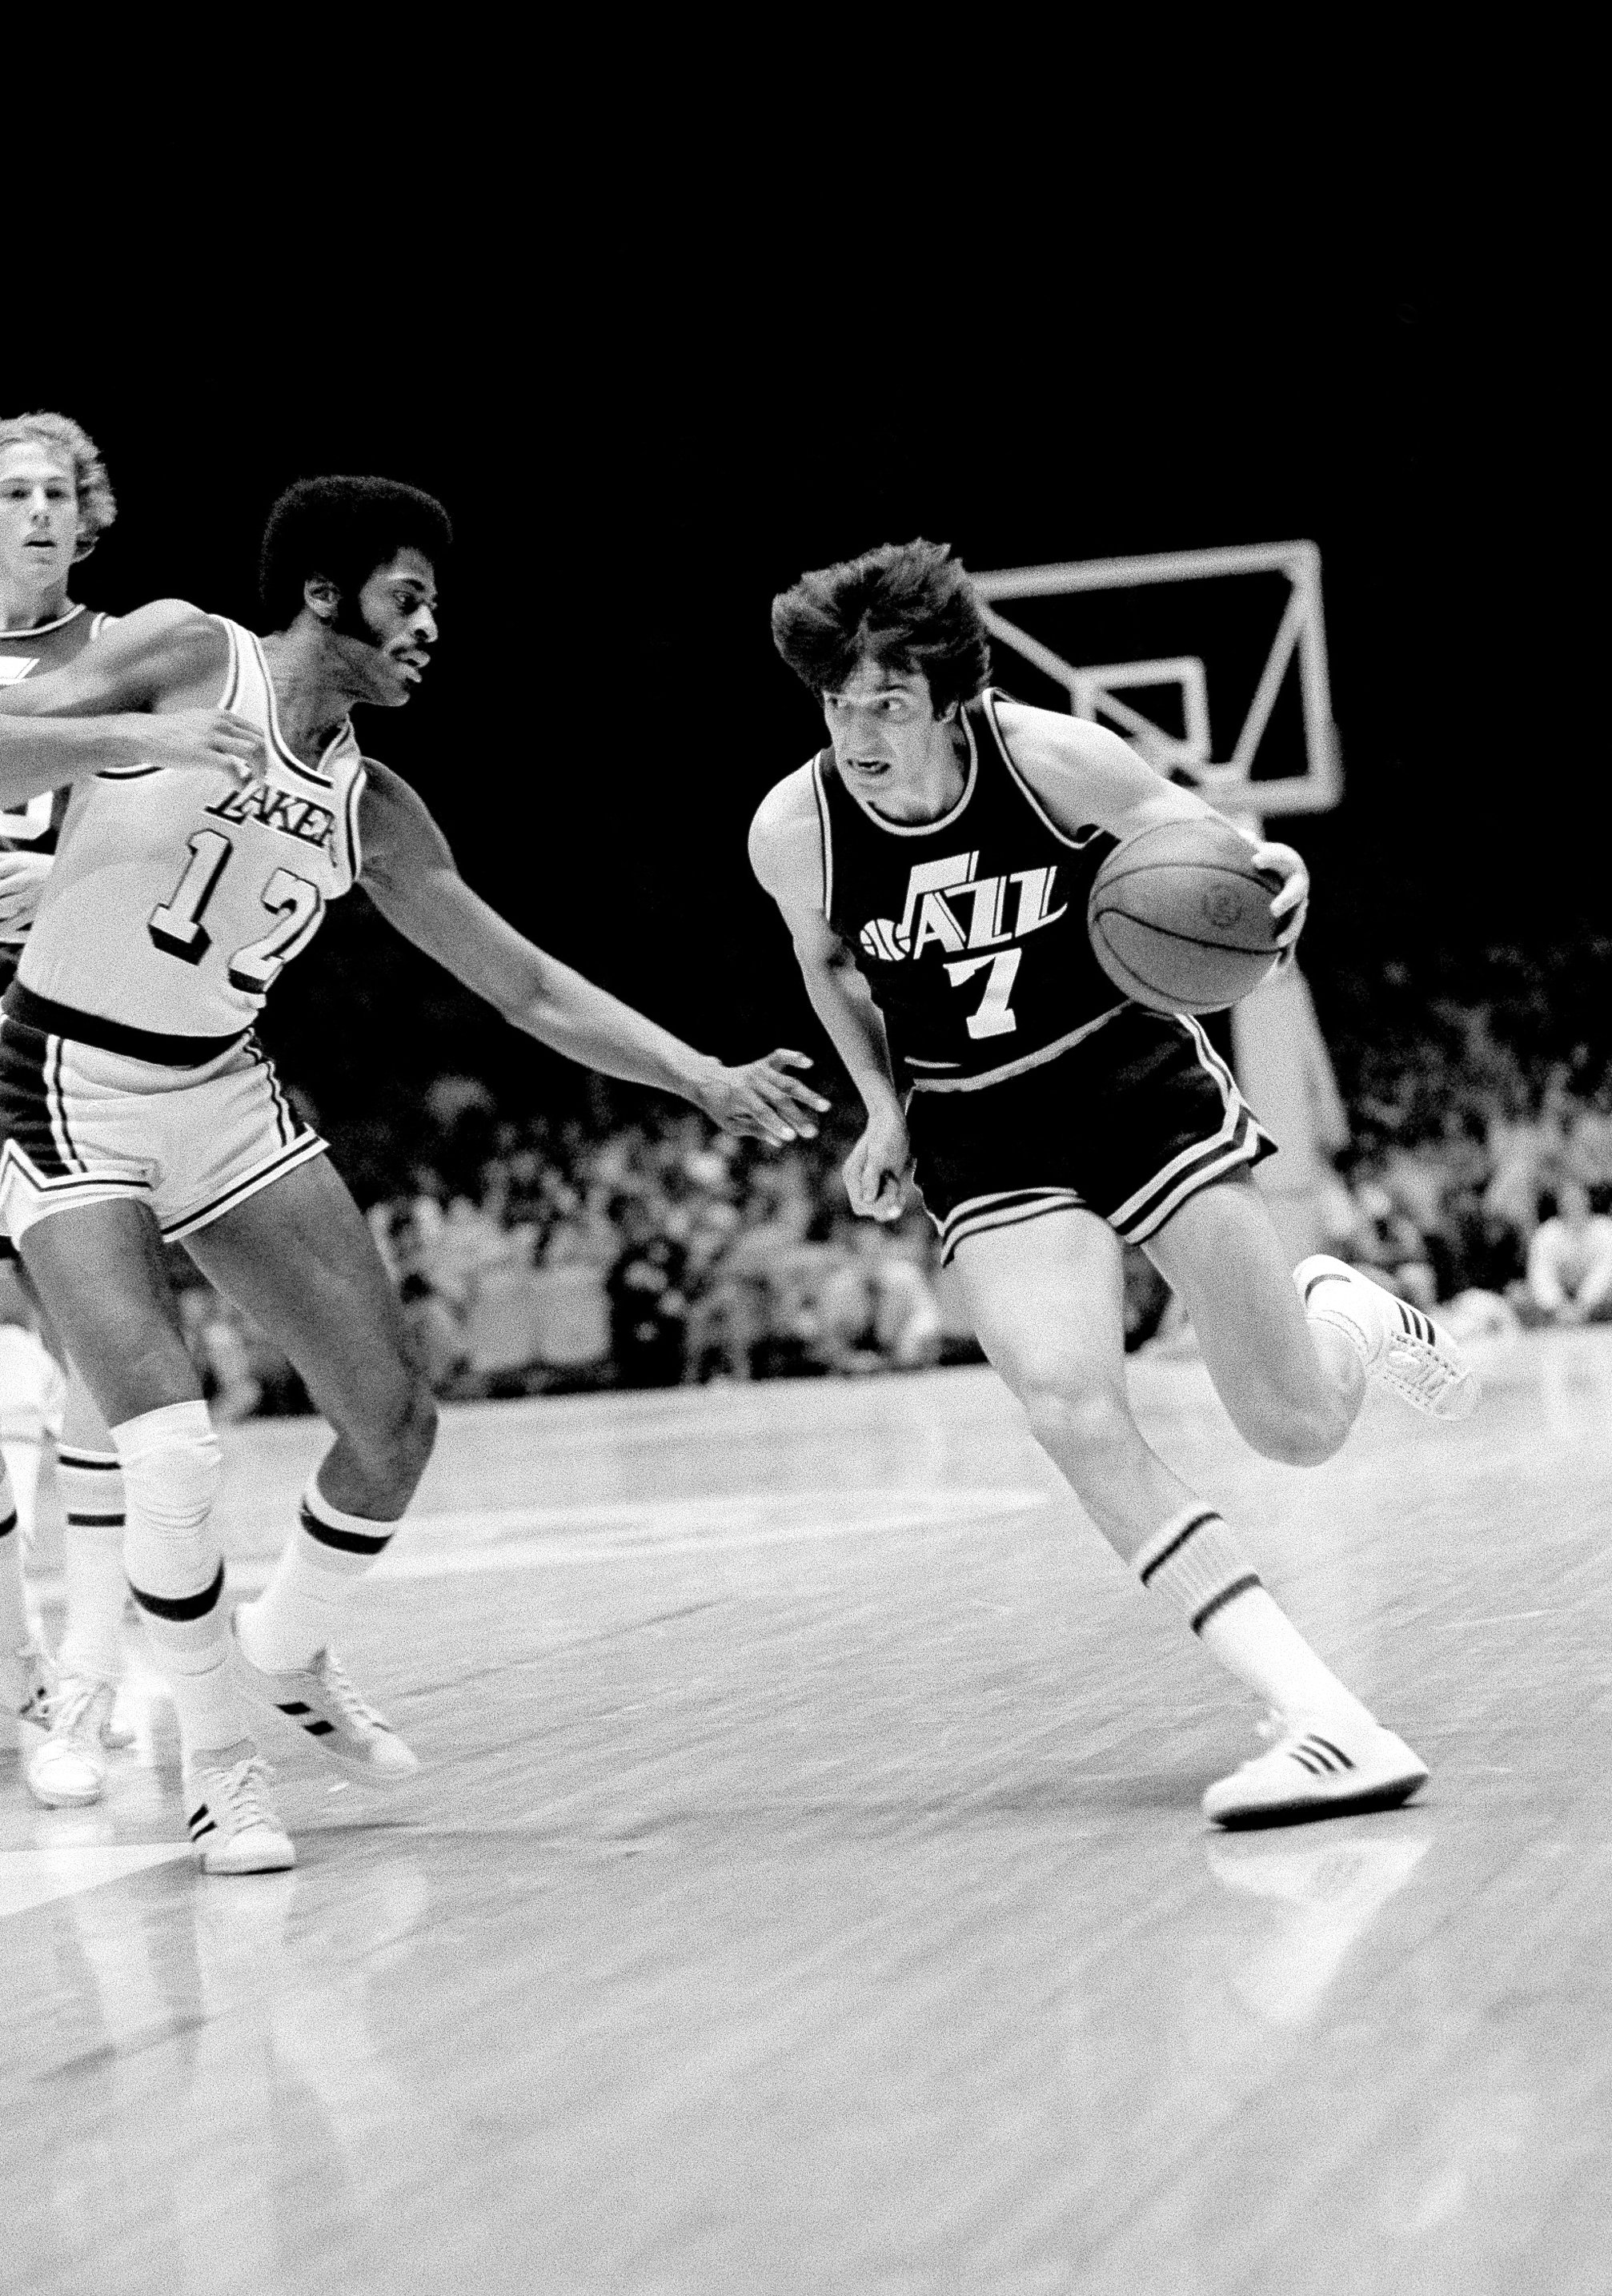 Pete Maravich (7) shows determination by the expression on his face as he drives past Los Angeles Laker Don Chaney